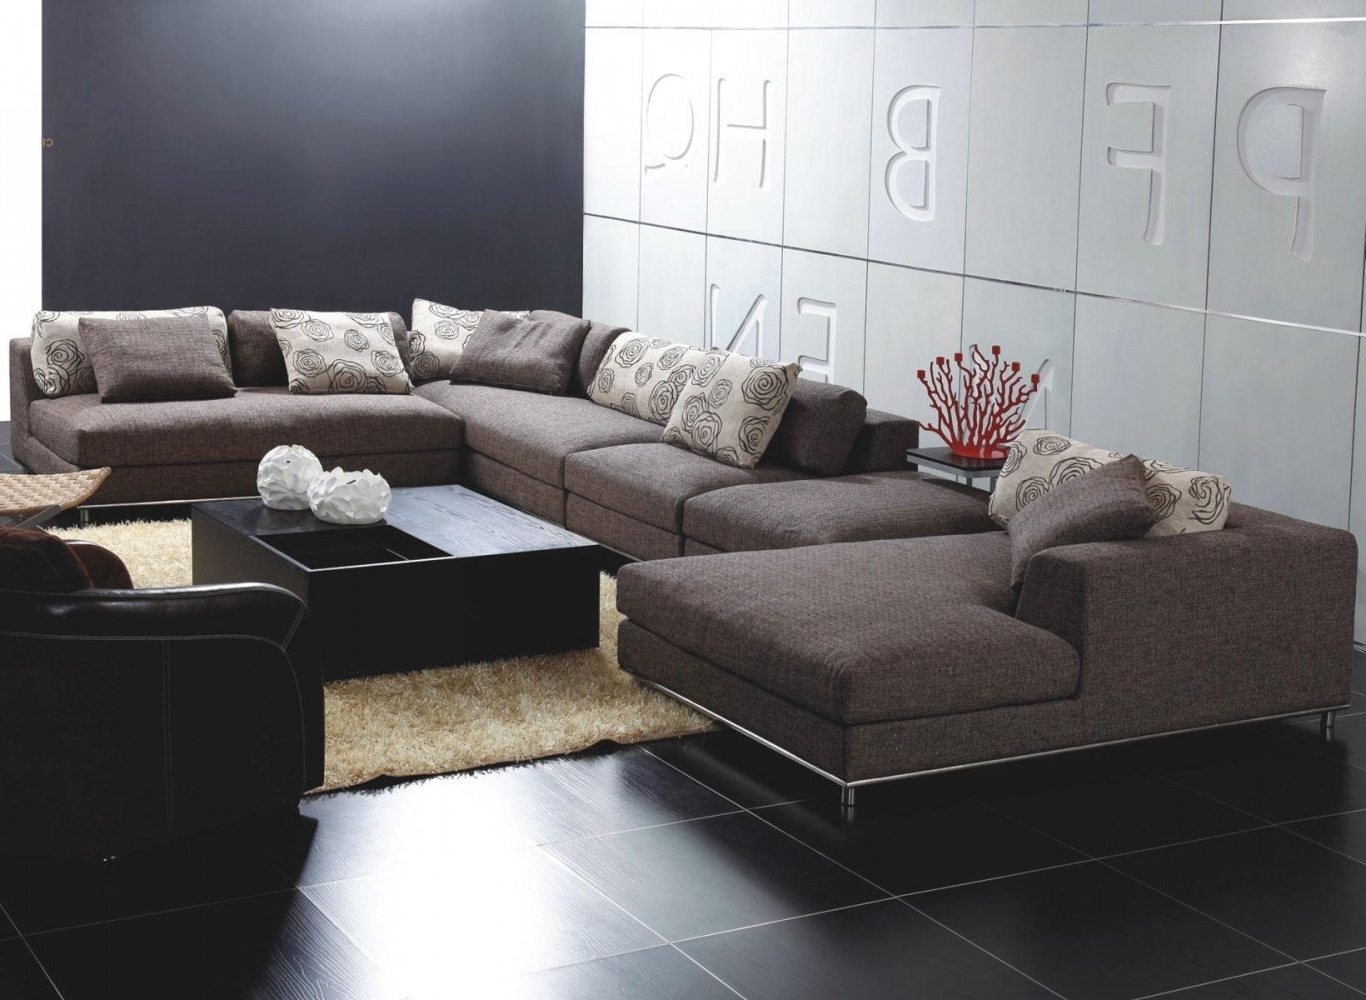 Newest Ottawa Sectional Sofas In November 2016 – Sectional Sofas (View 7 of 20)